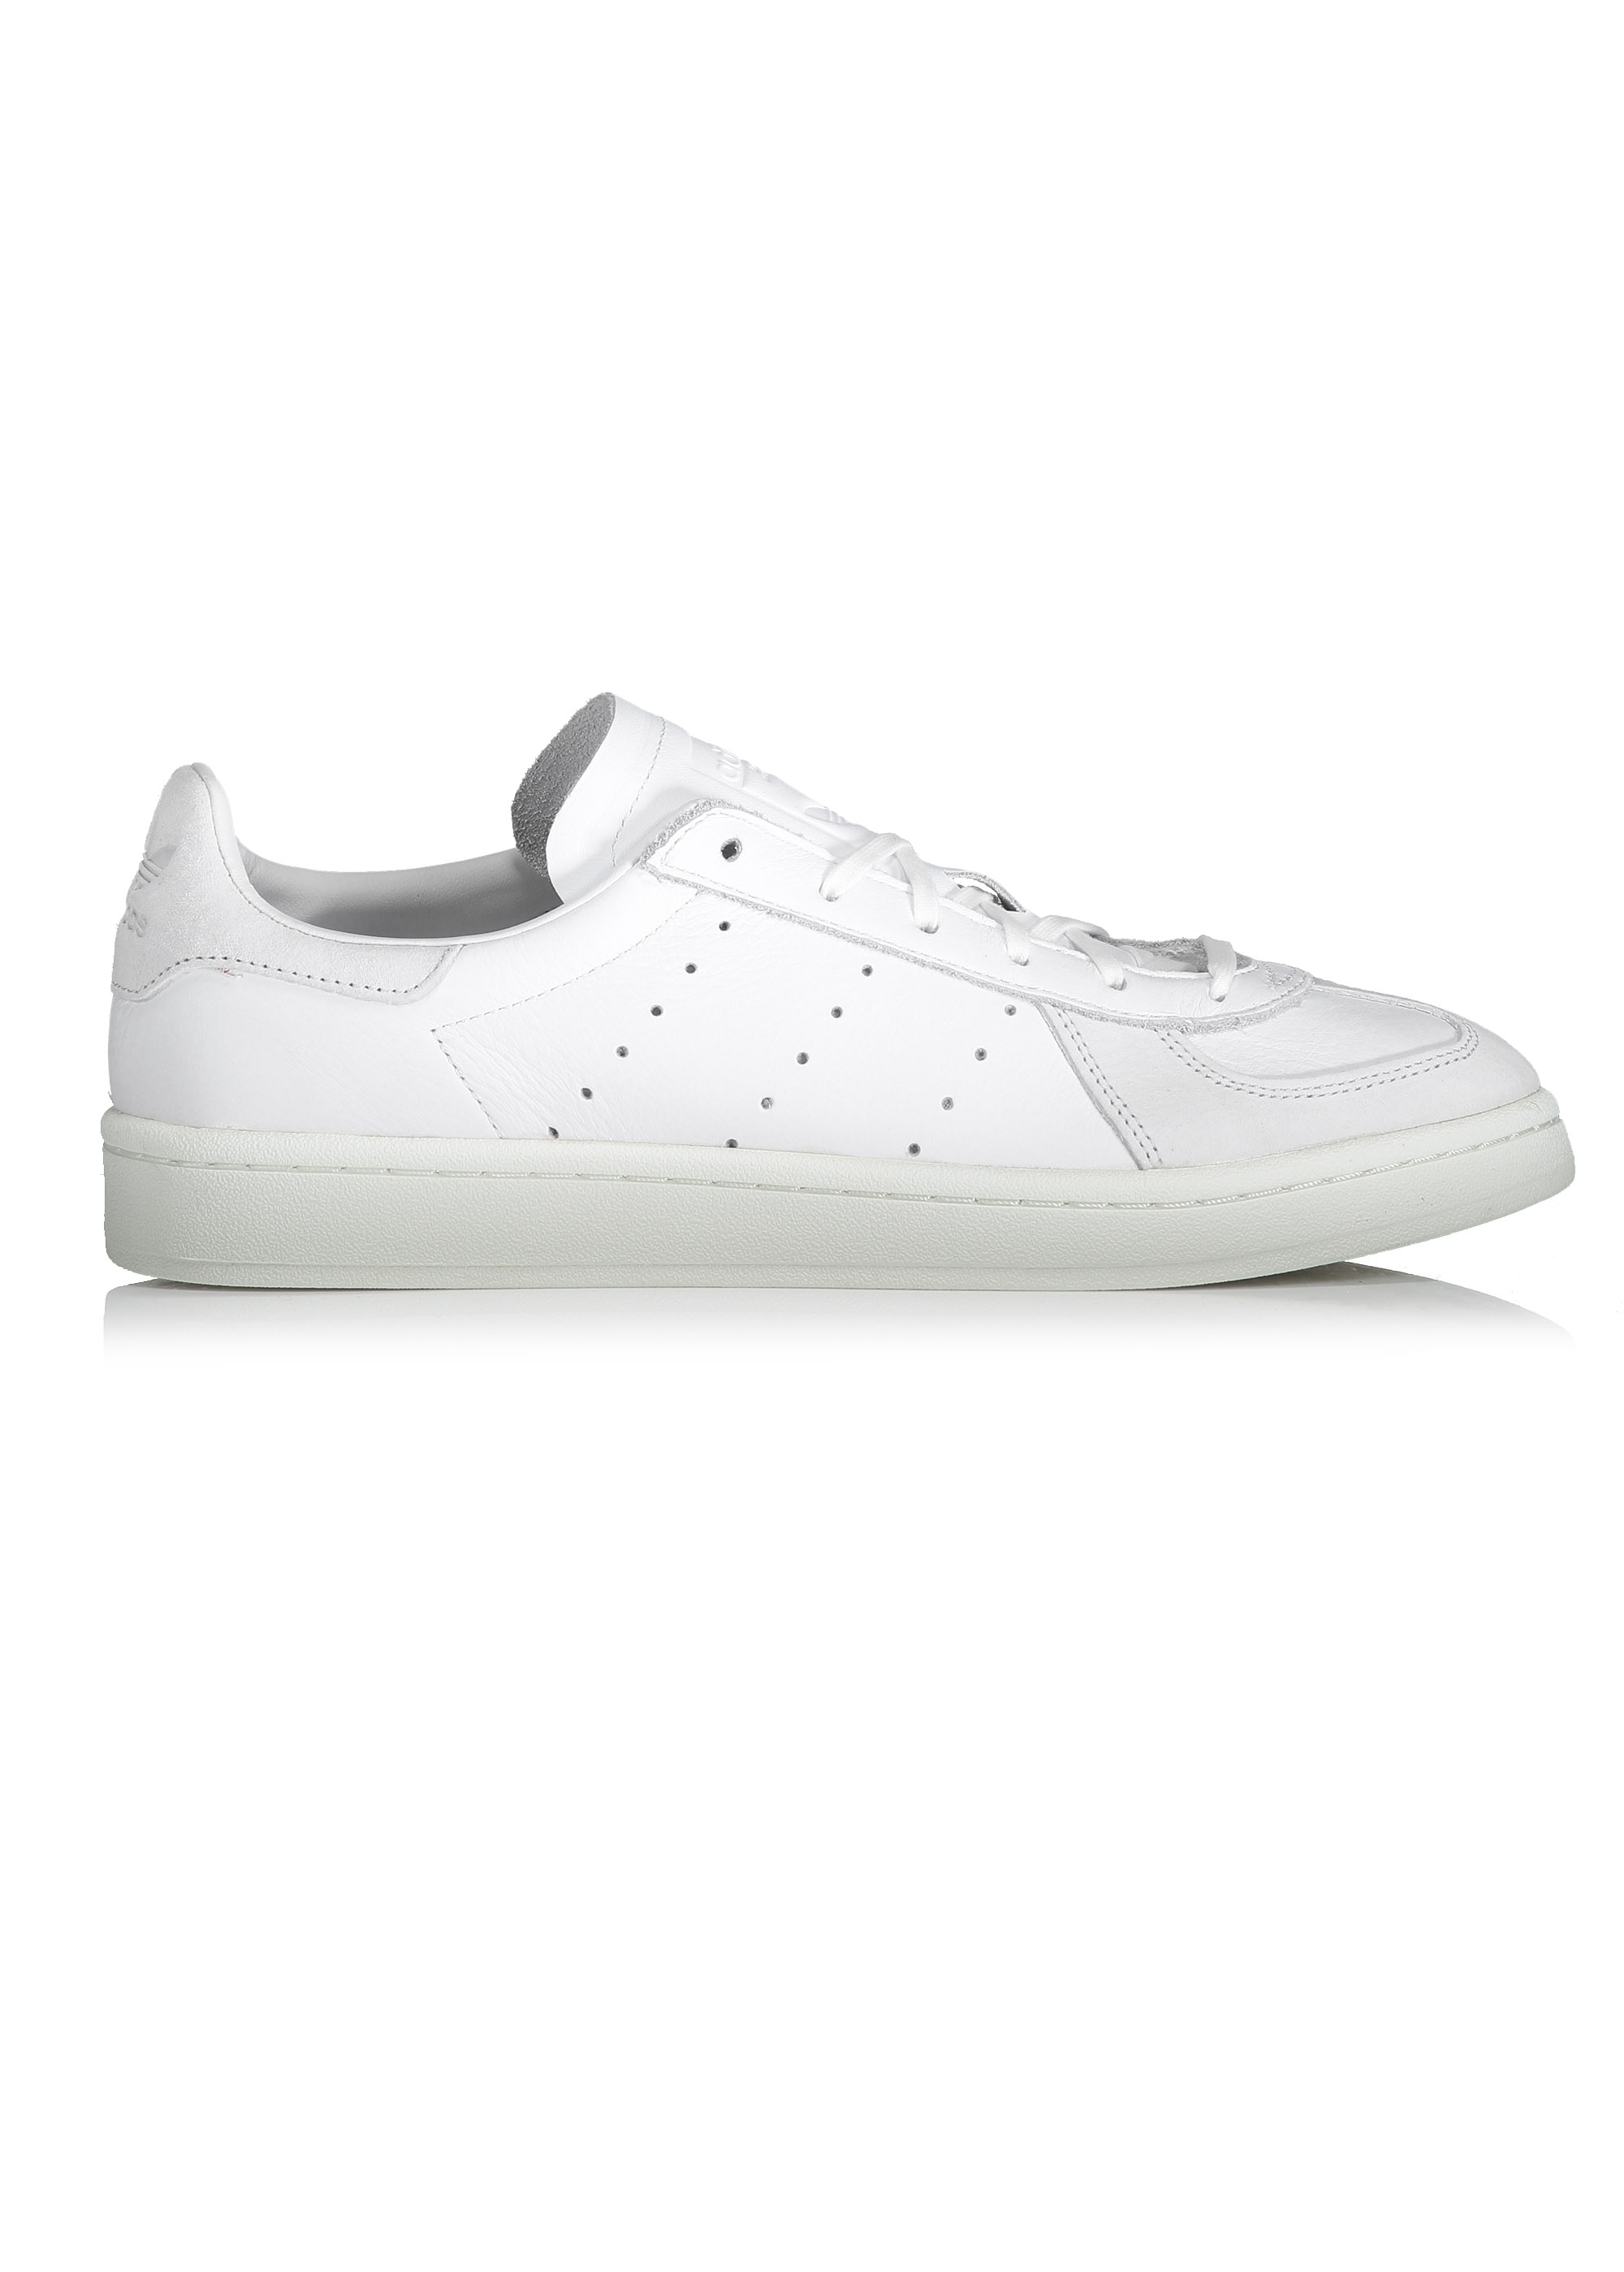 6877add0264 adidas Originals Footwear BW Avenue - White - Trainers from Triads UK